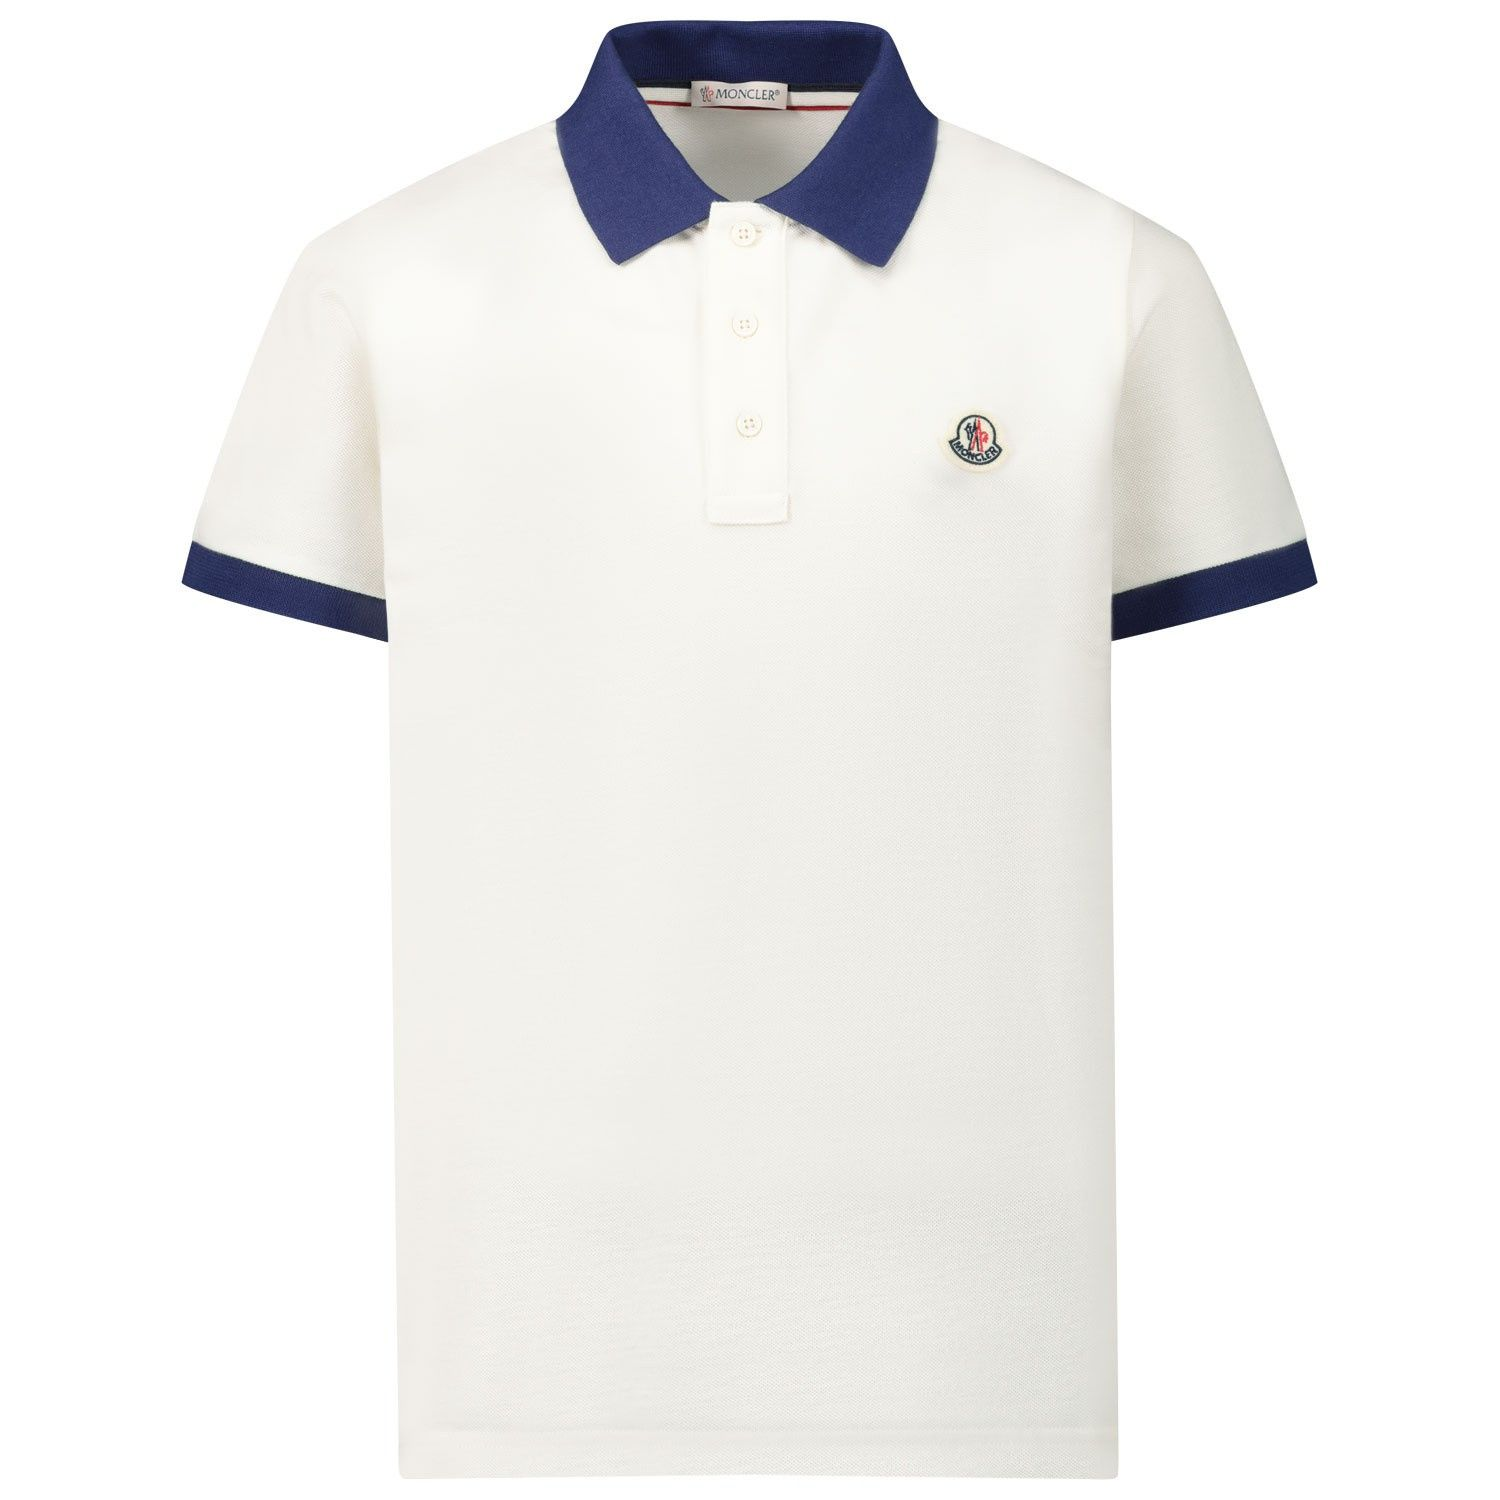 Picture of Moncler 8A70120 kids polo shirt white